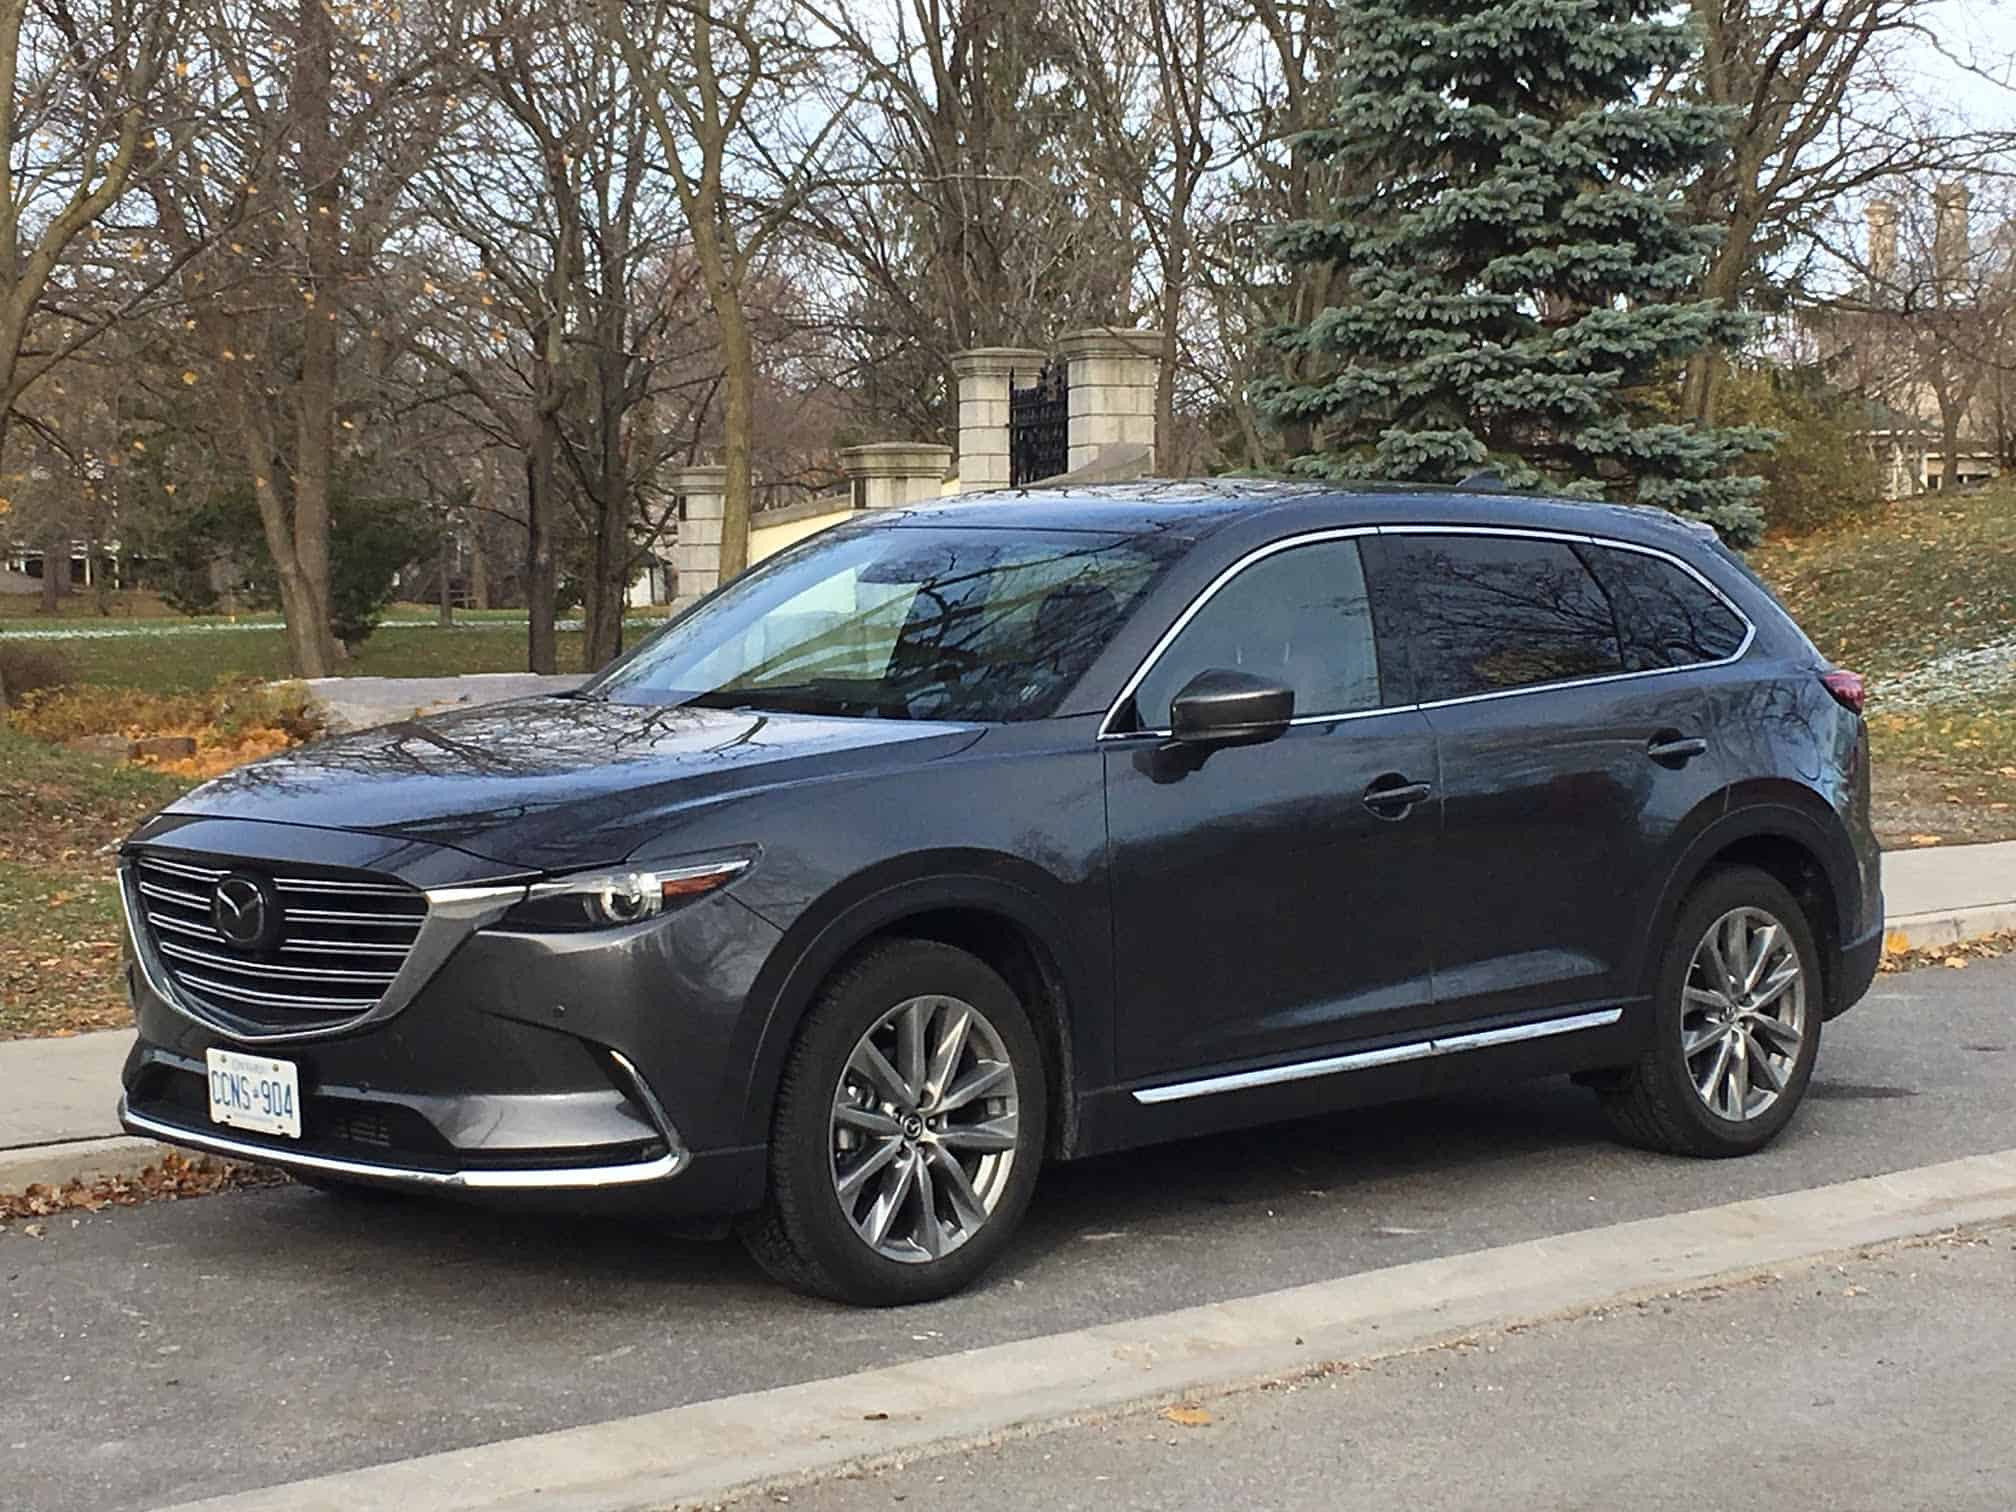 2019 Mazda CX-9: All about the experience... - Gone Driving